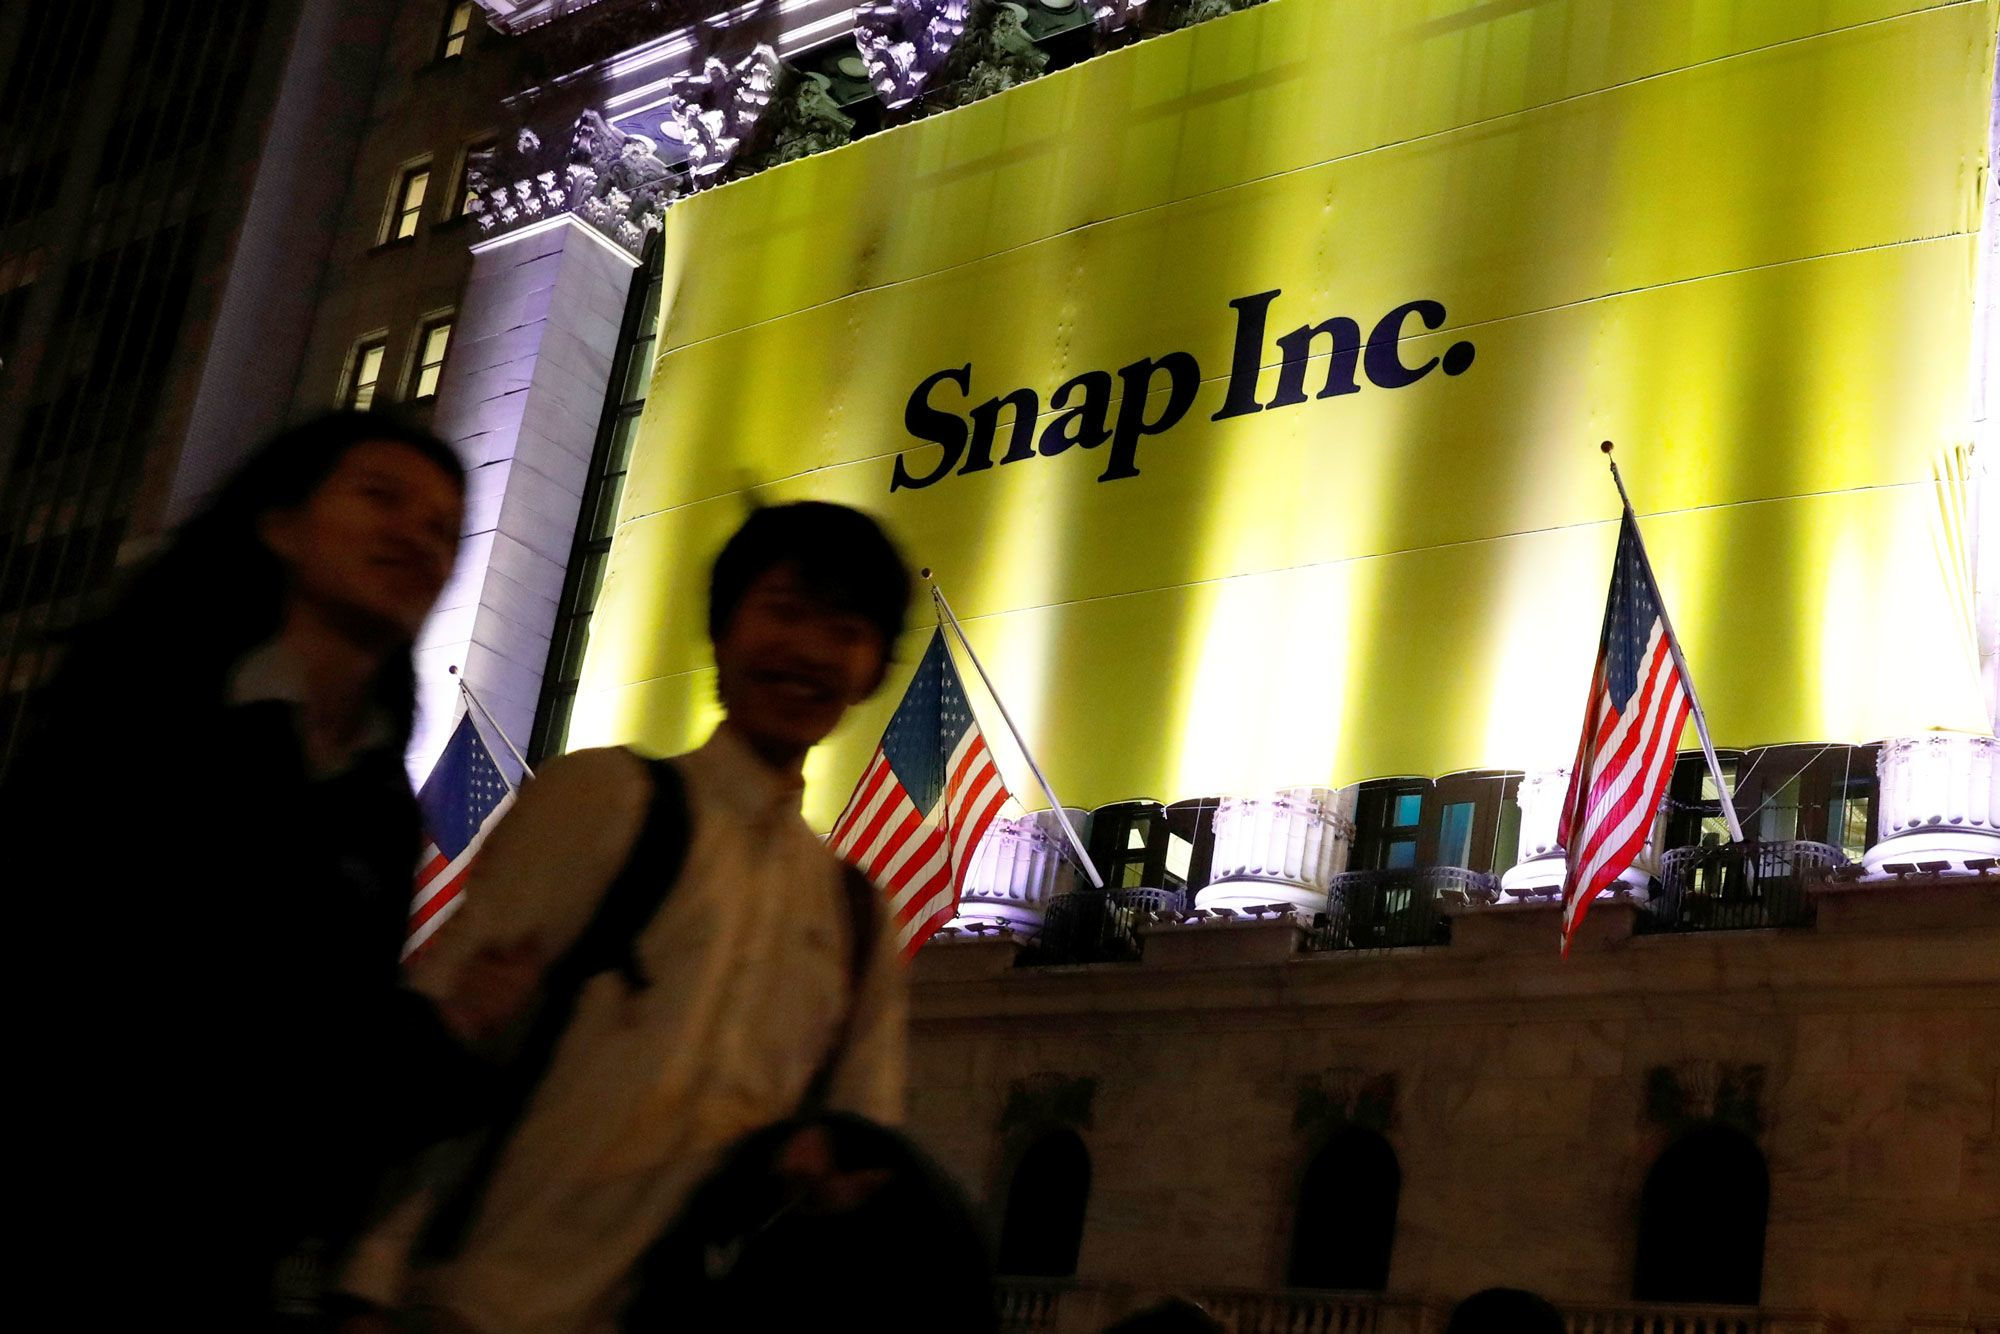 Stocks making the biggest moves after hours: Facebook, Amazon, Snap, Chipotle, iRobot and more